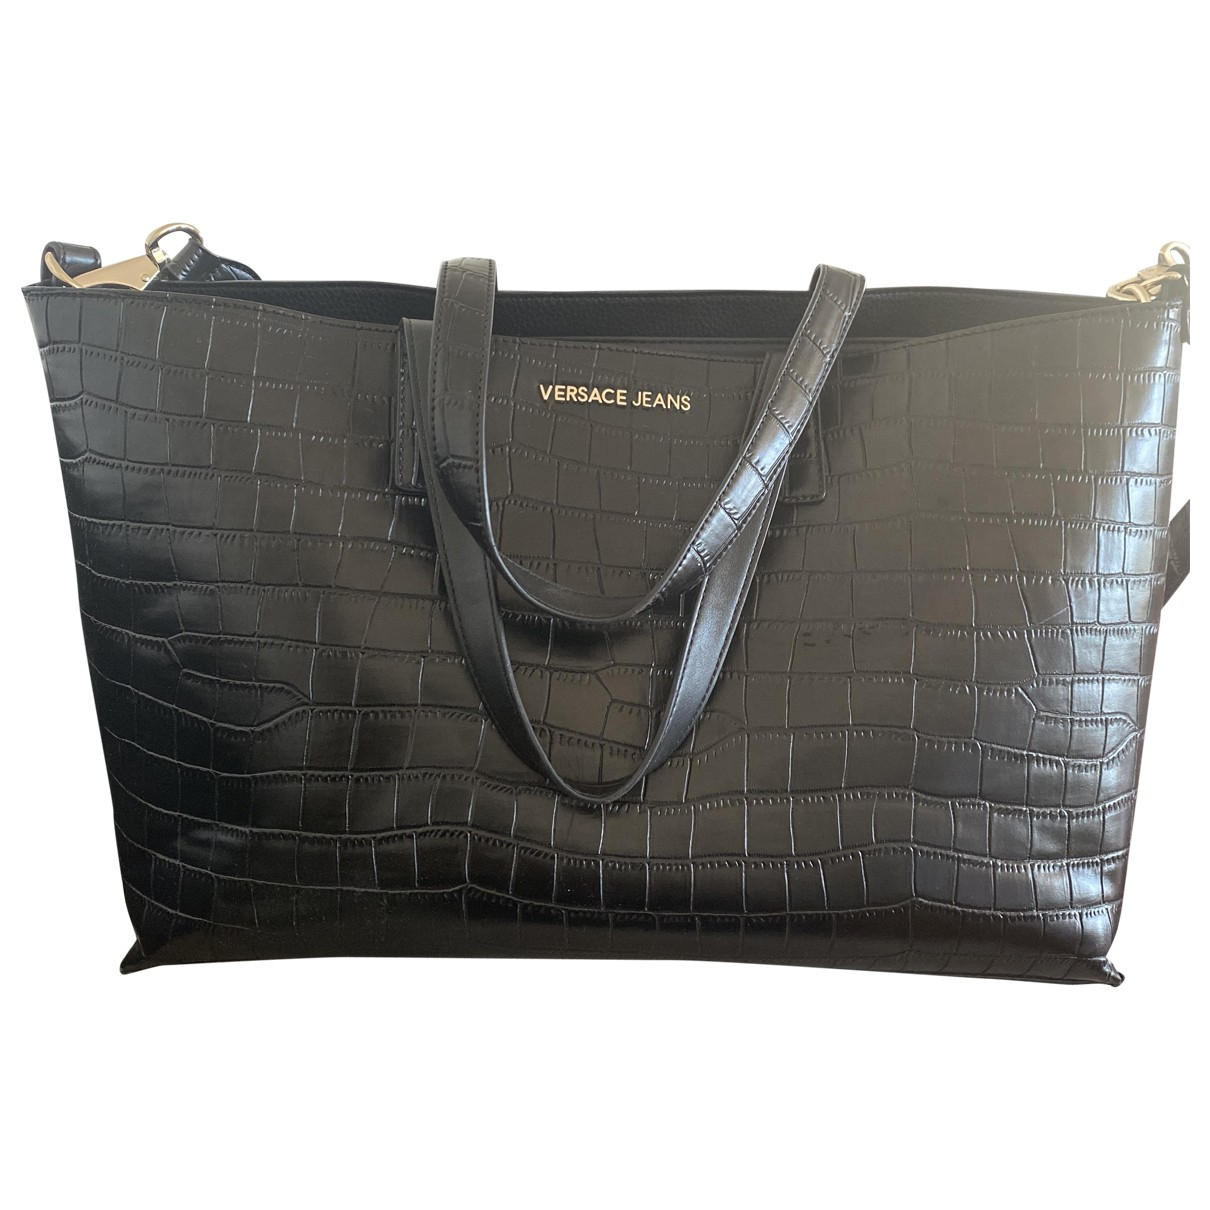 Versace Jeans \N Black handbag for Women \N